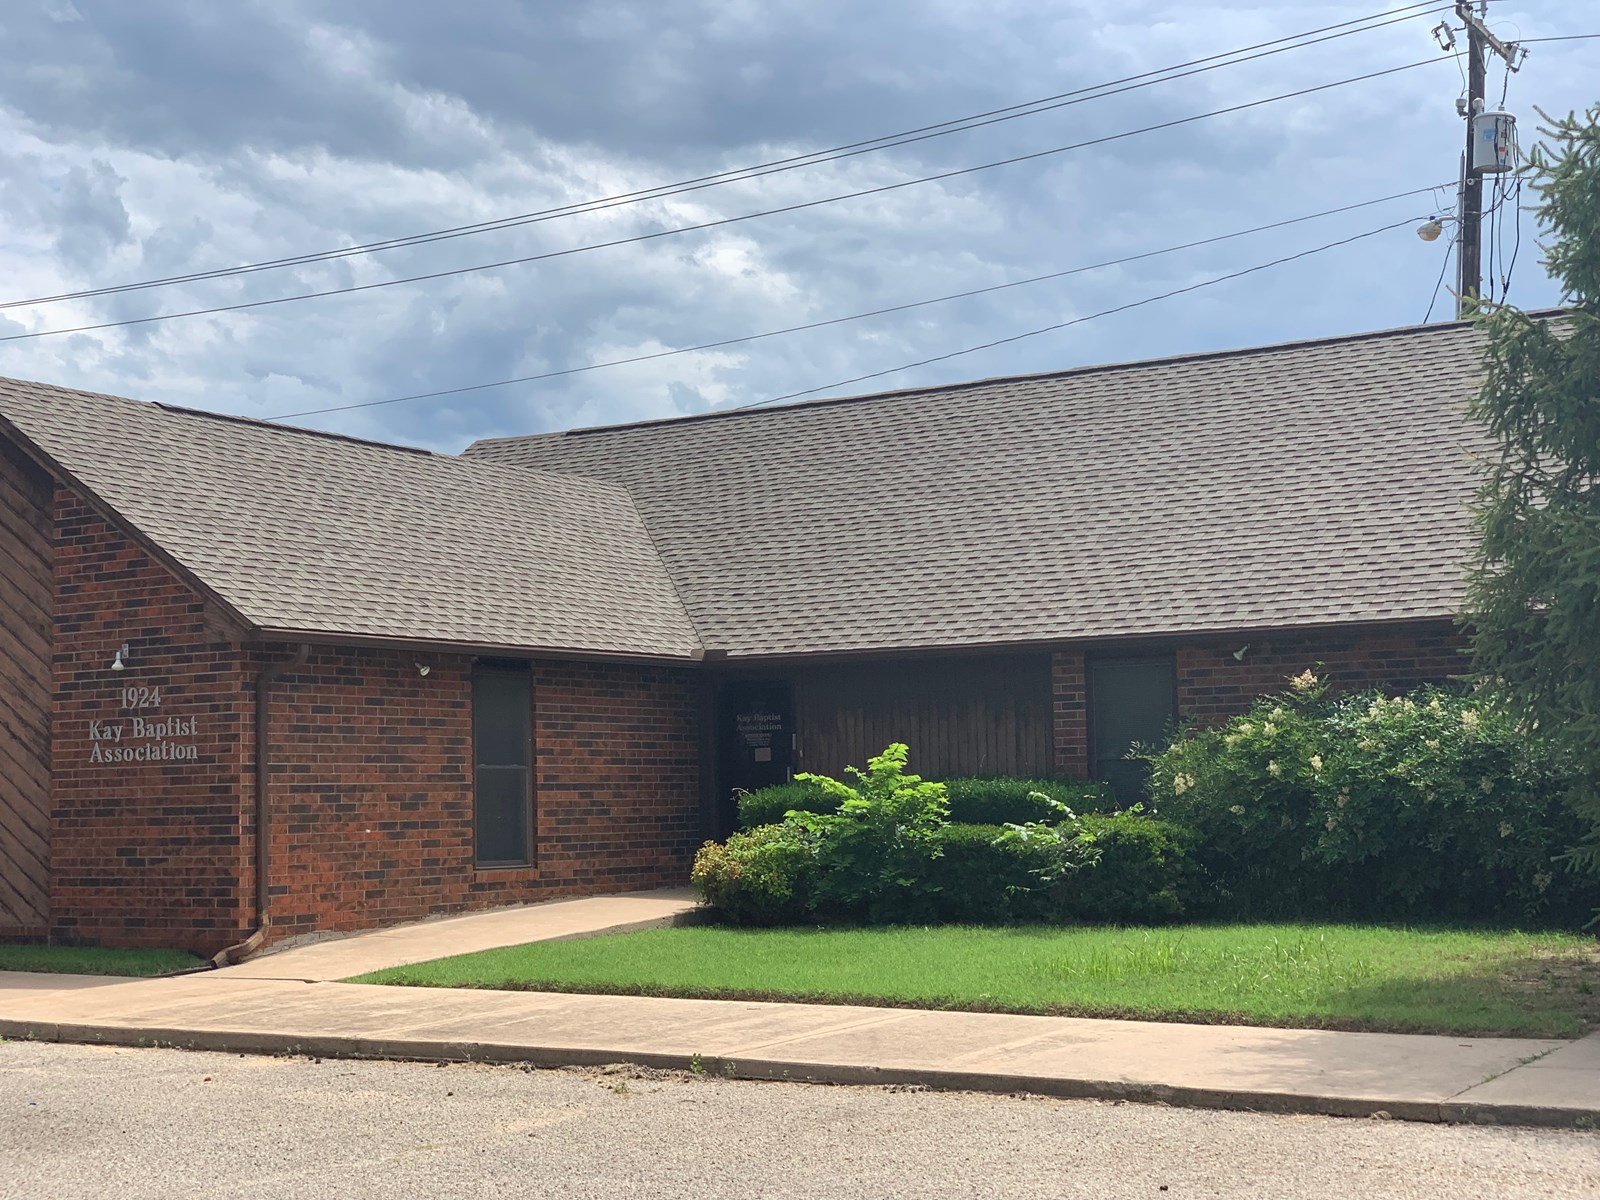 PONCA CITY COMMERCIAL OFFICE SPACE FOR SALE